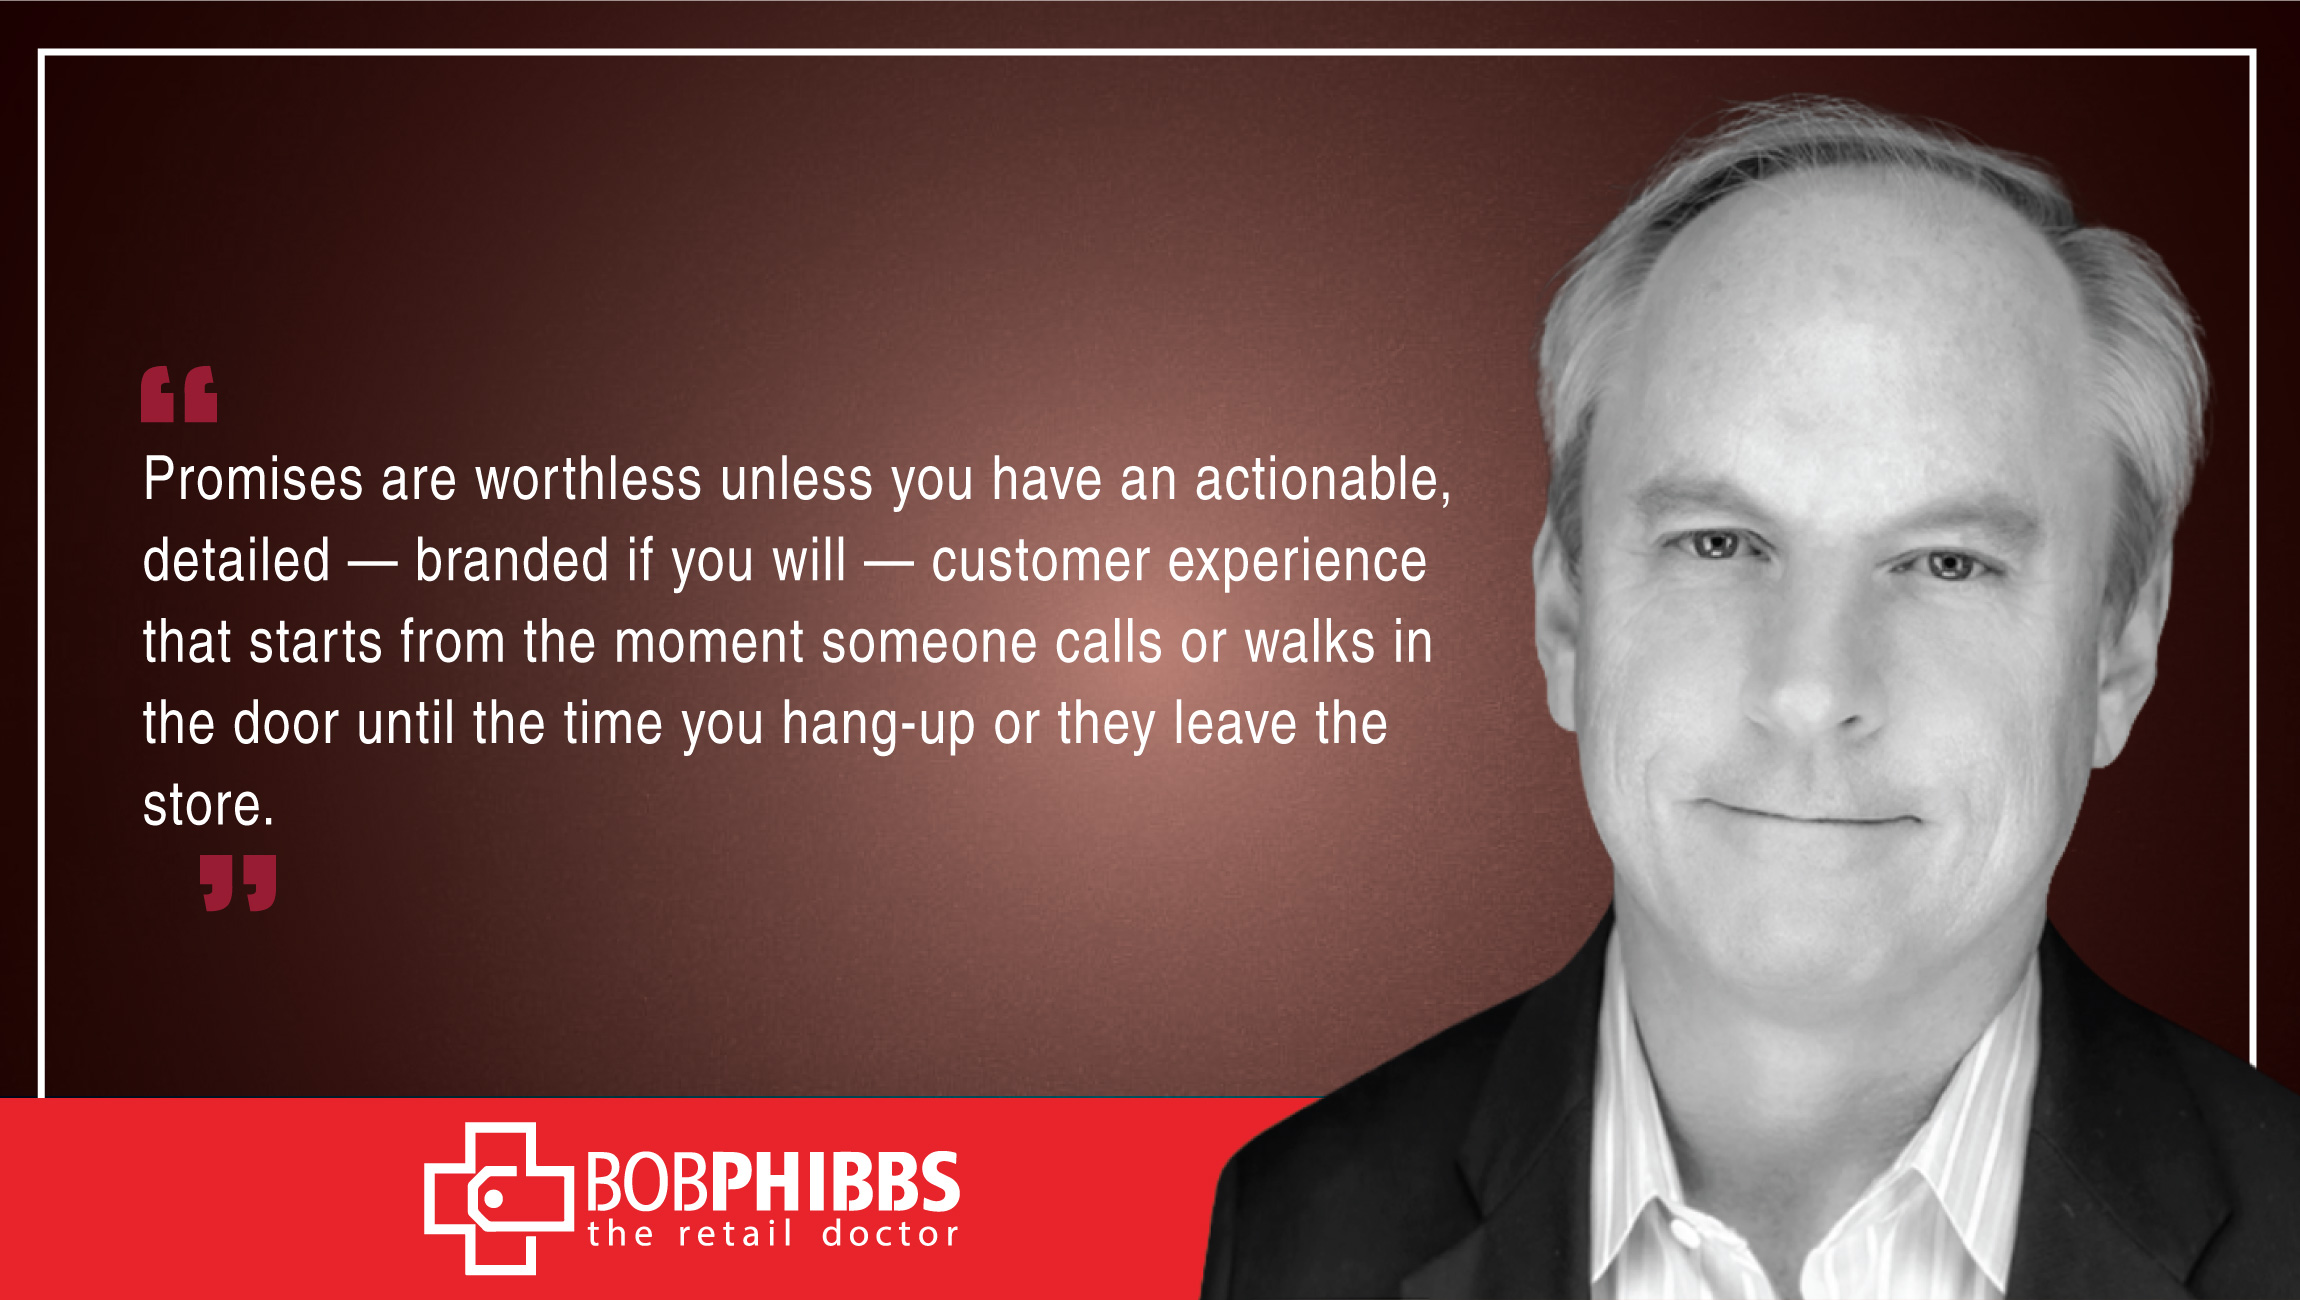 Bob Phibbs, CEO, The Retail Doctor